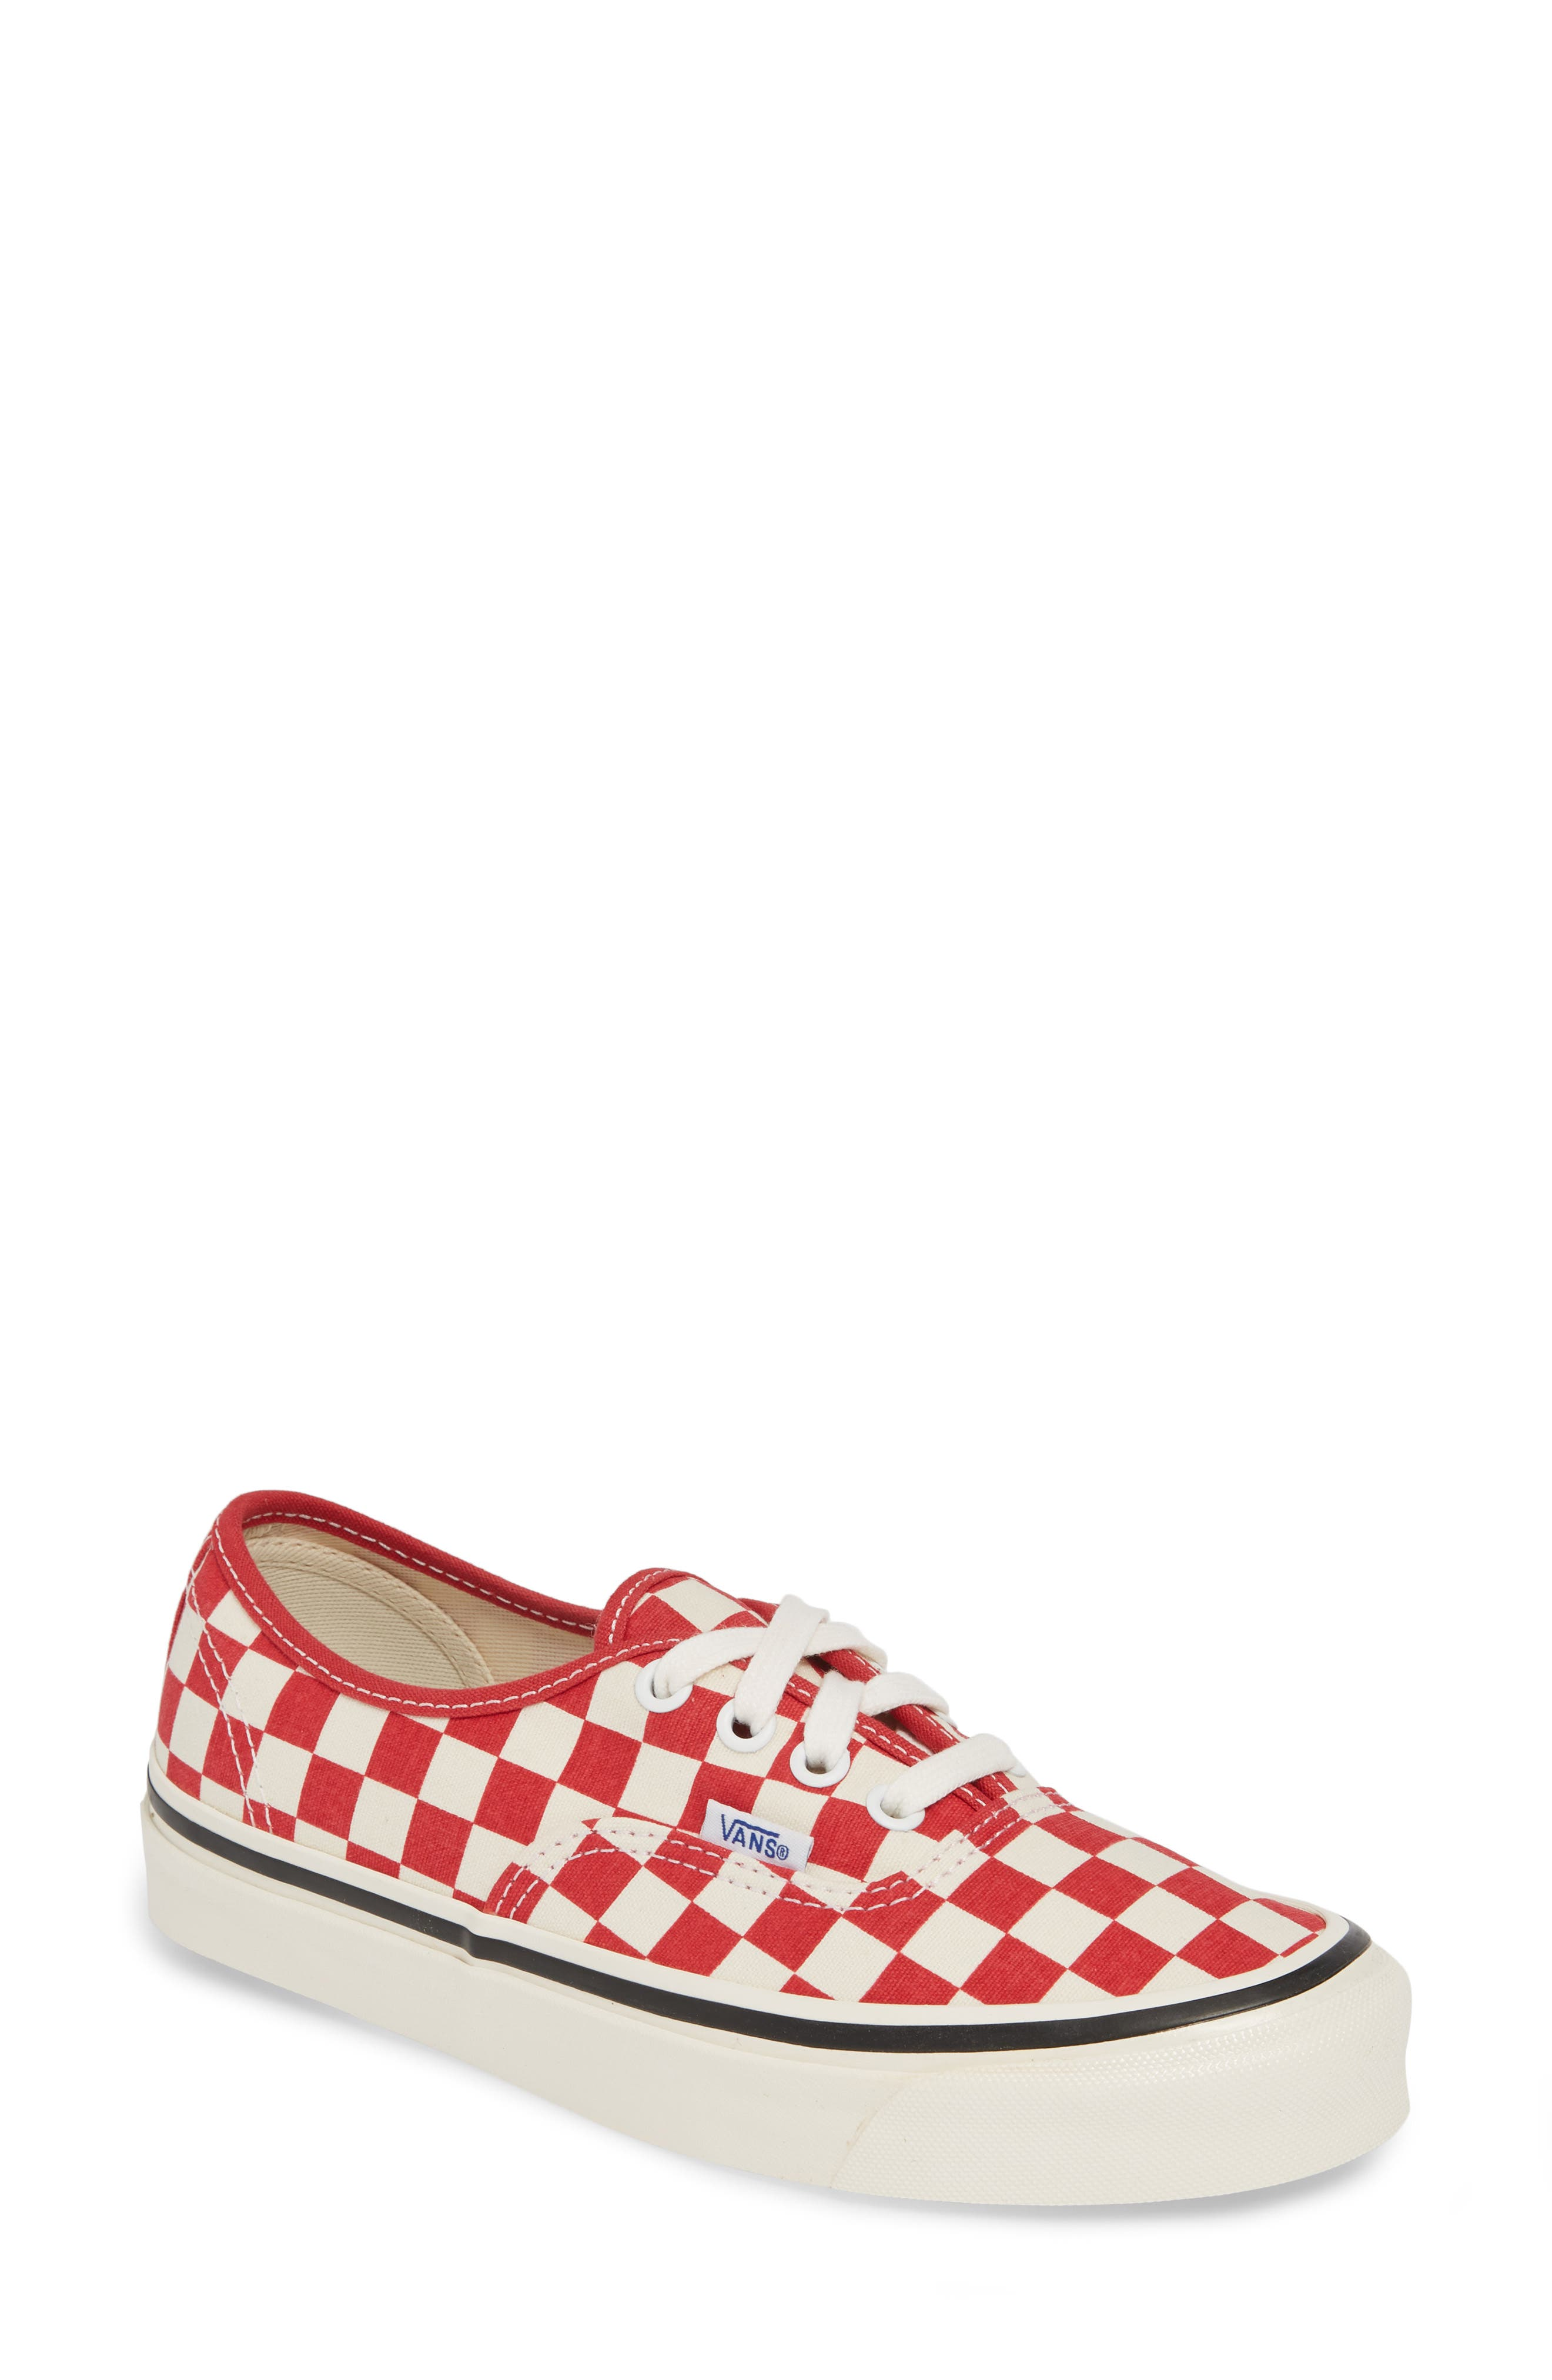 VANS Authentic 44 DX Sneaker, Main, color, RED/ CHECK